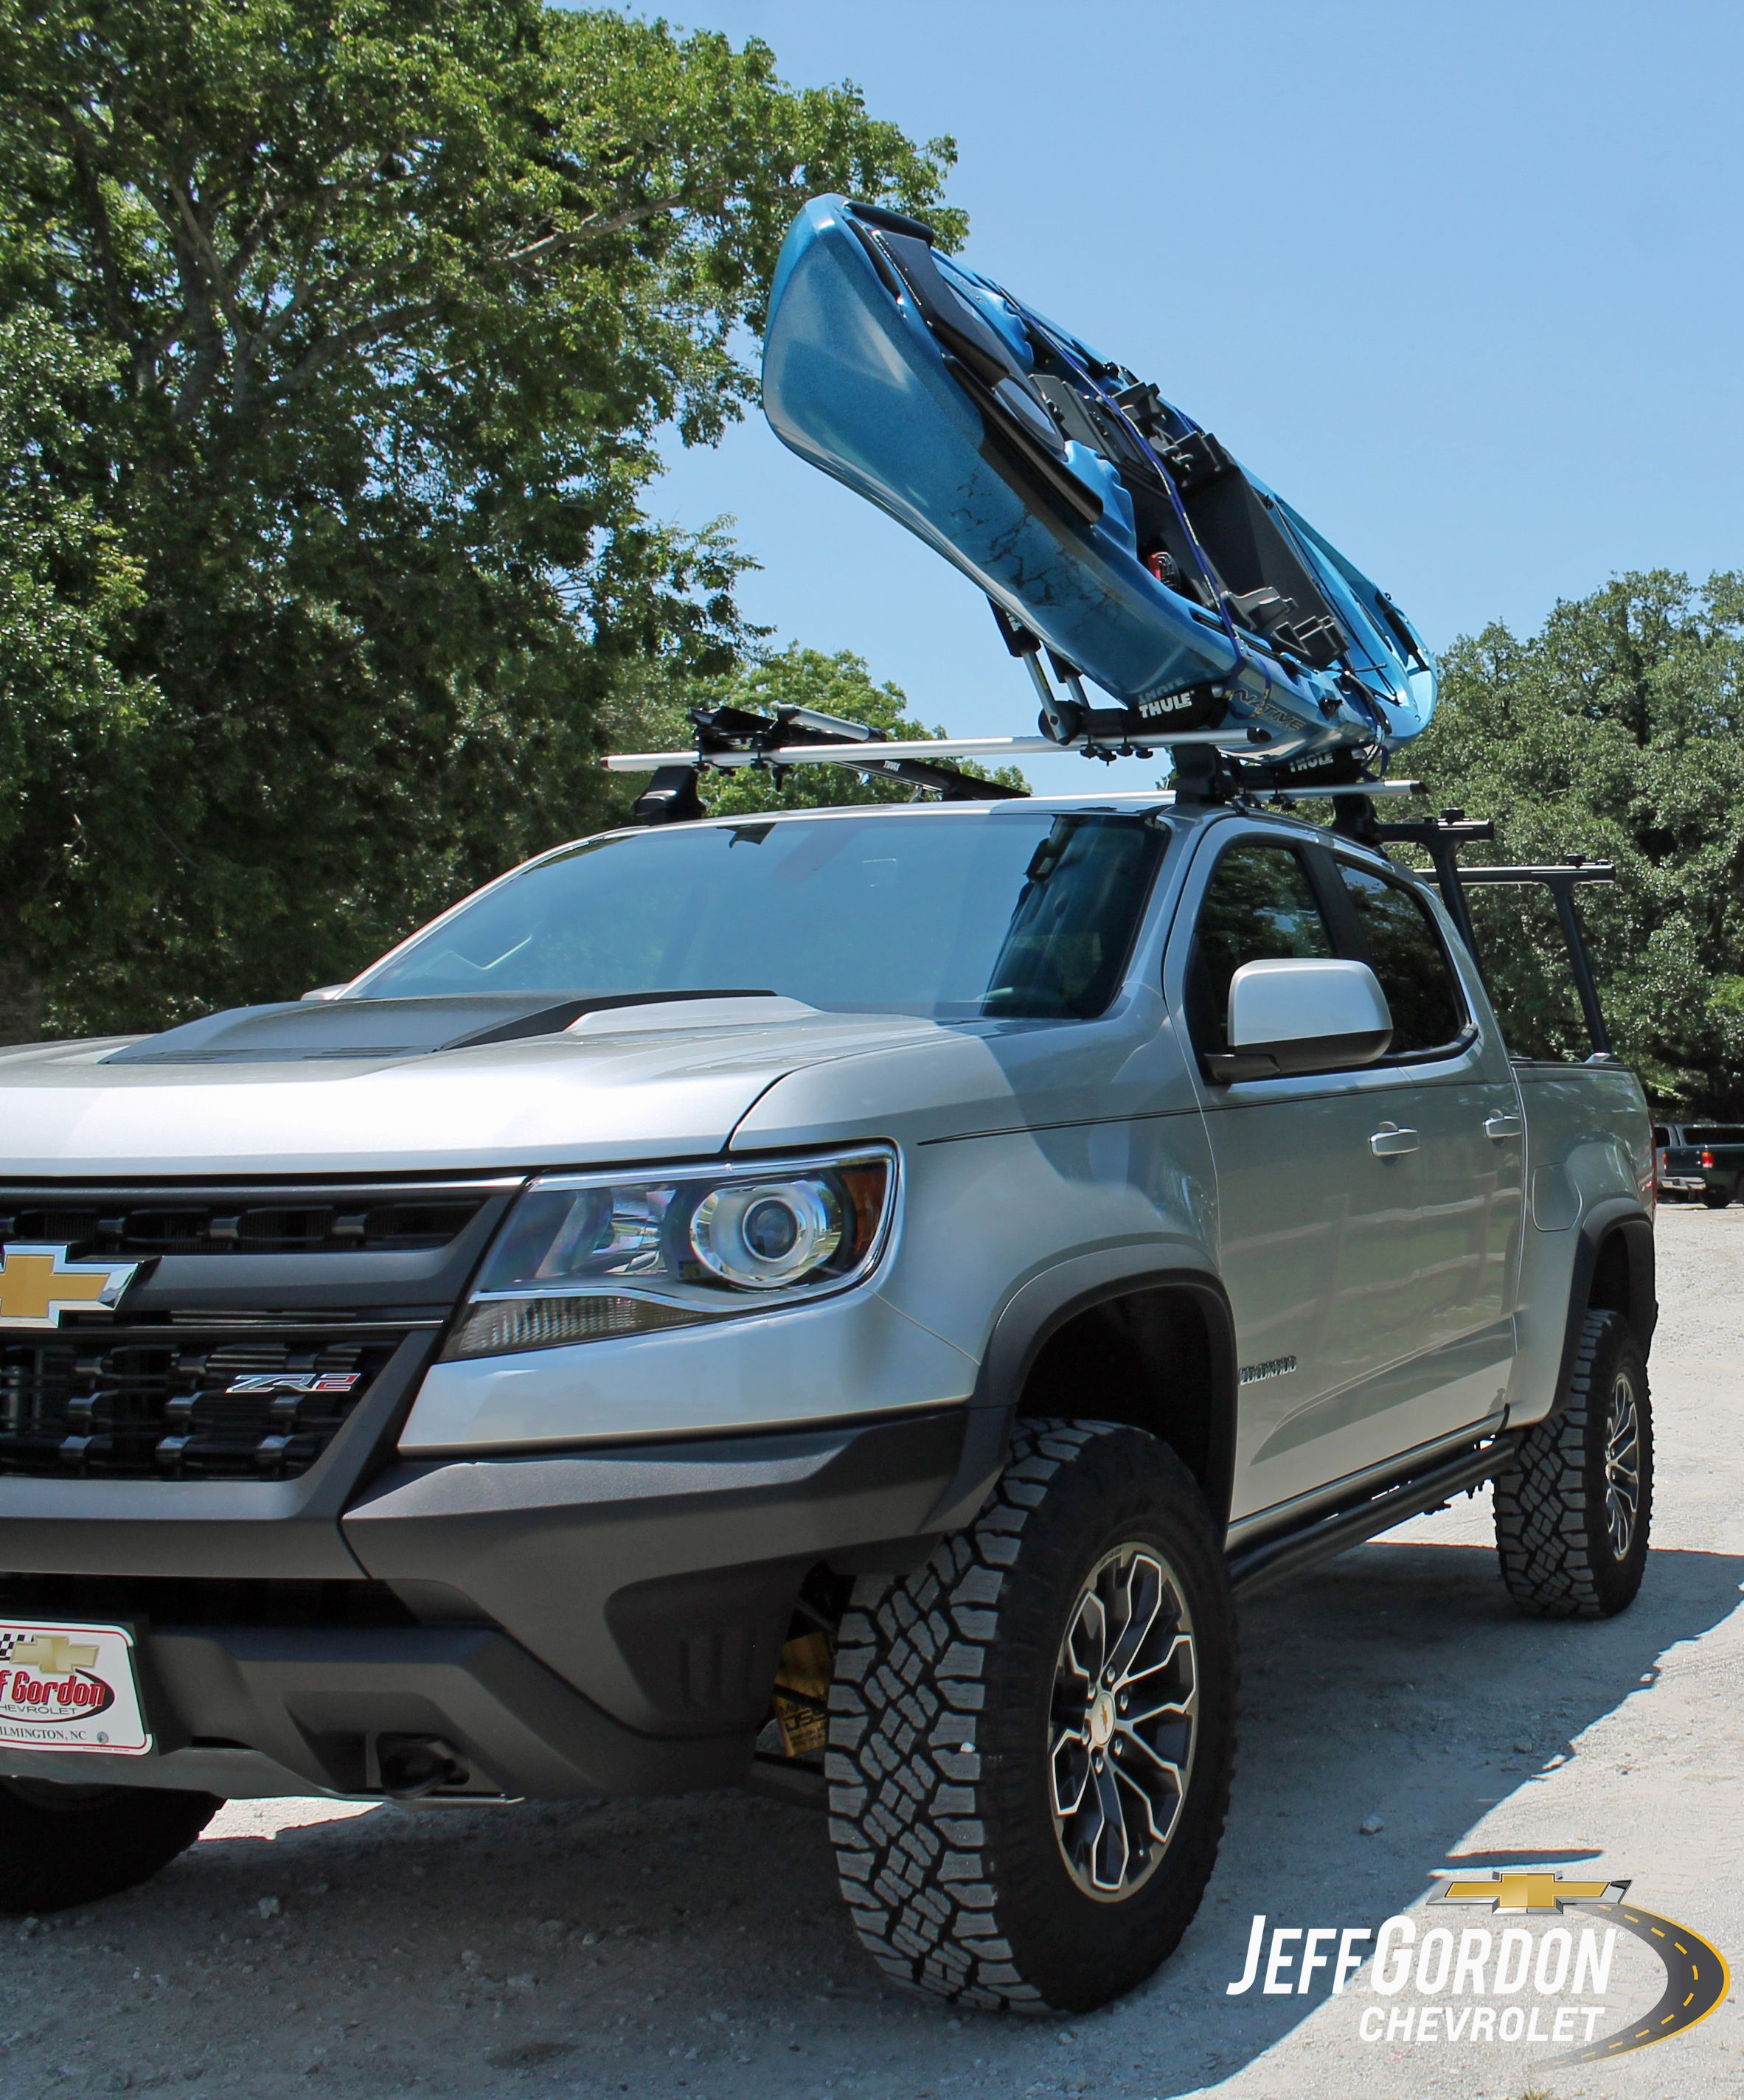 The Ruggedly Handsome Chevrolet Colorado Zr2 Equipped With The Thule Gearon Exterior Cargo Management System Will Sec Chevrolet Colorado Chevrolet Chevy Trucks